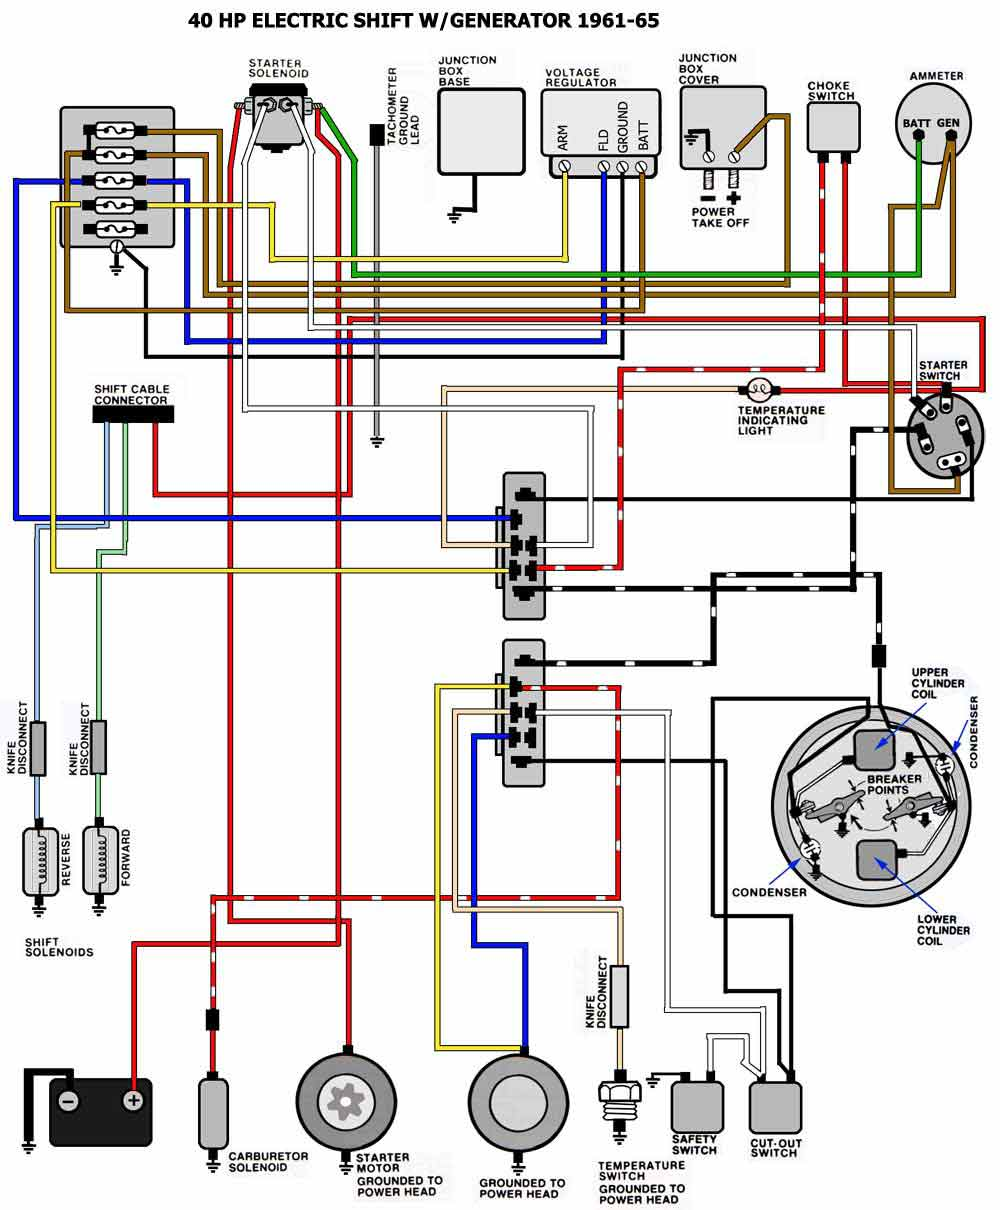 Mesmerizing omc ignition switch wiring diagram 1974 photos best omc ignition switch wiring diagram wiring library asfbconference2016 Gallery